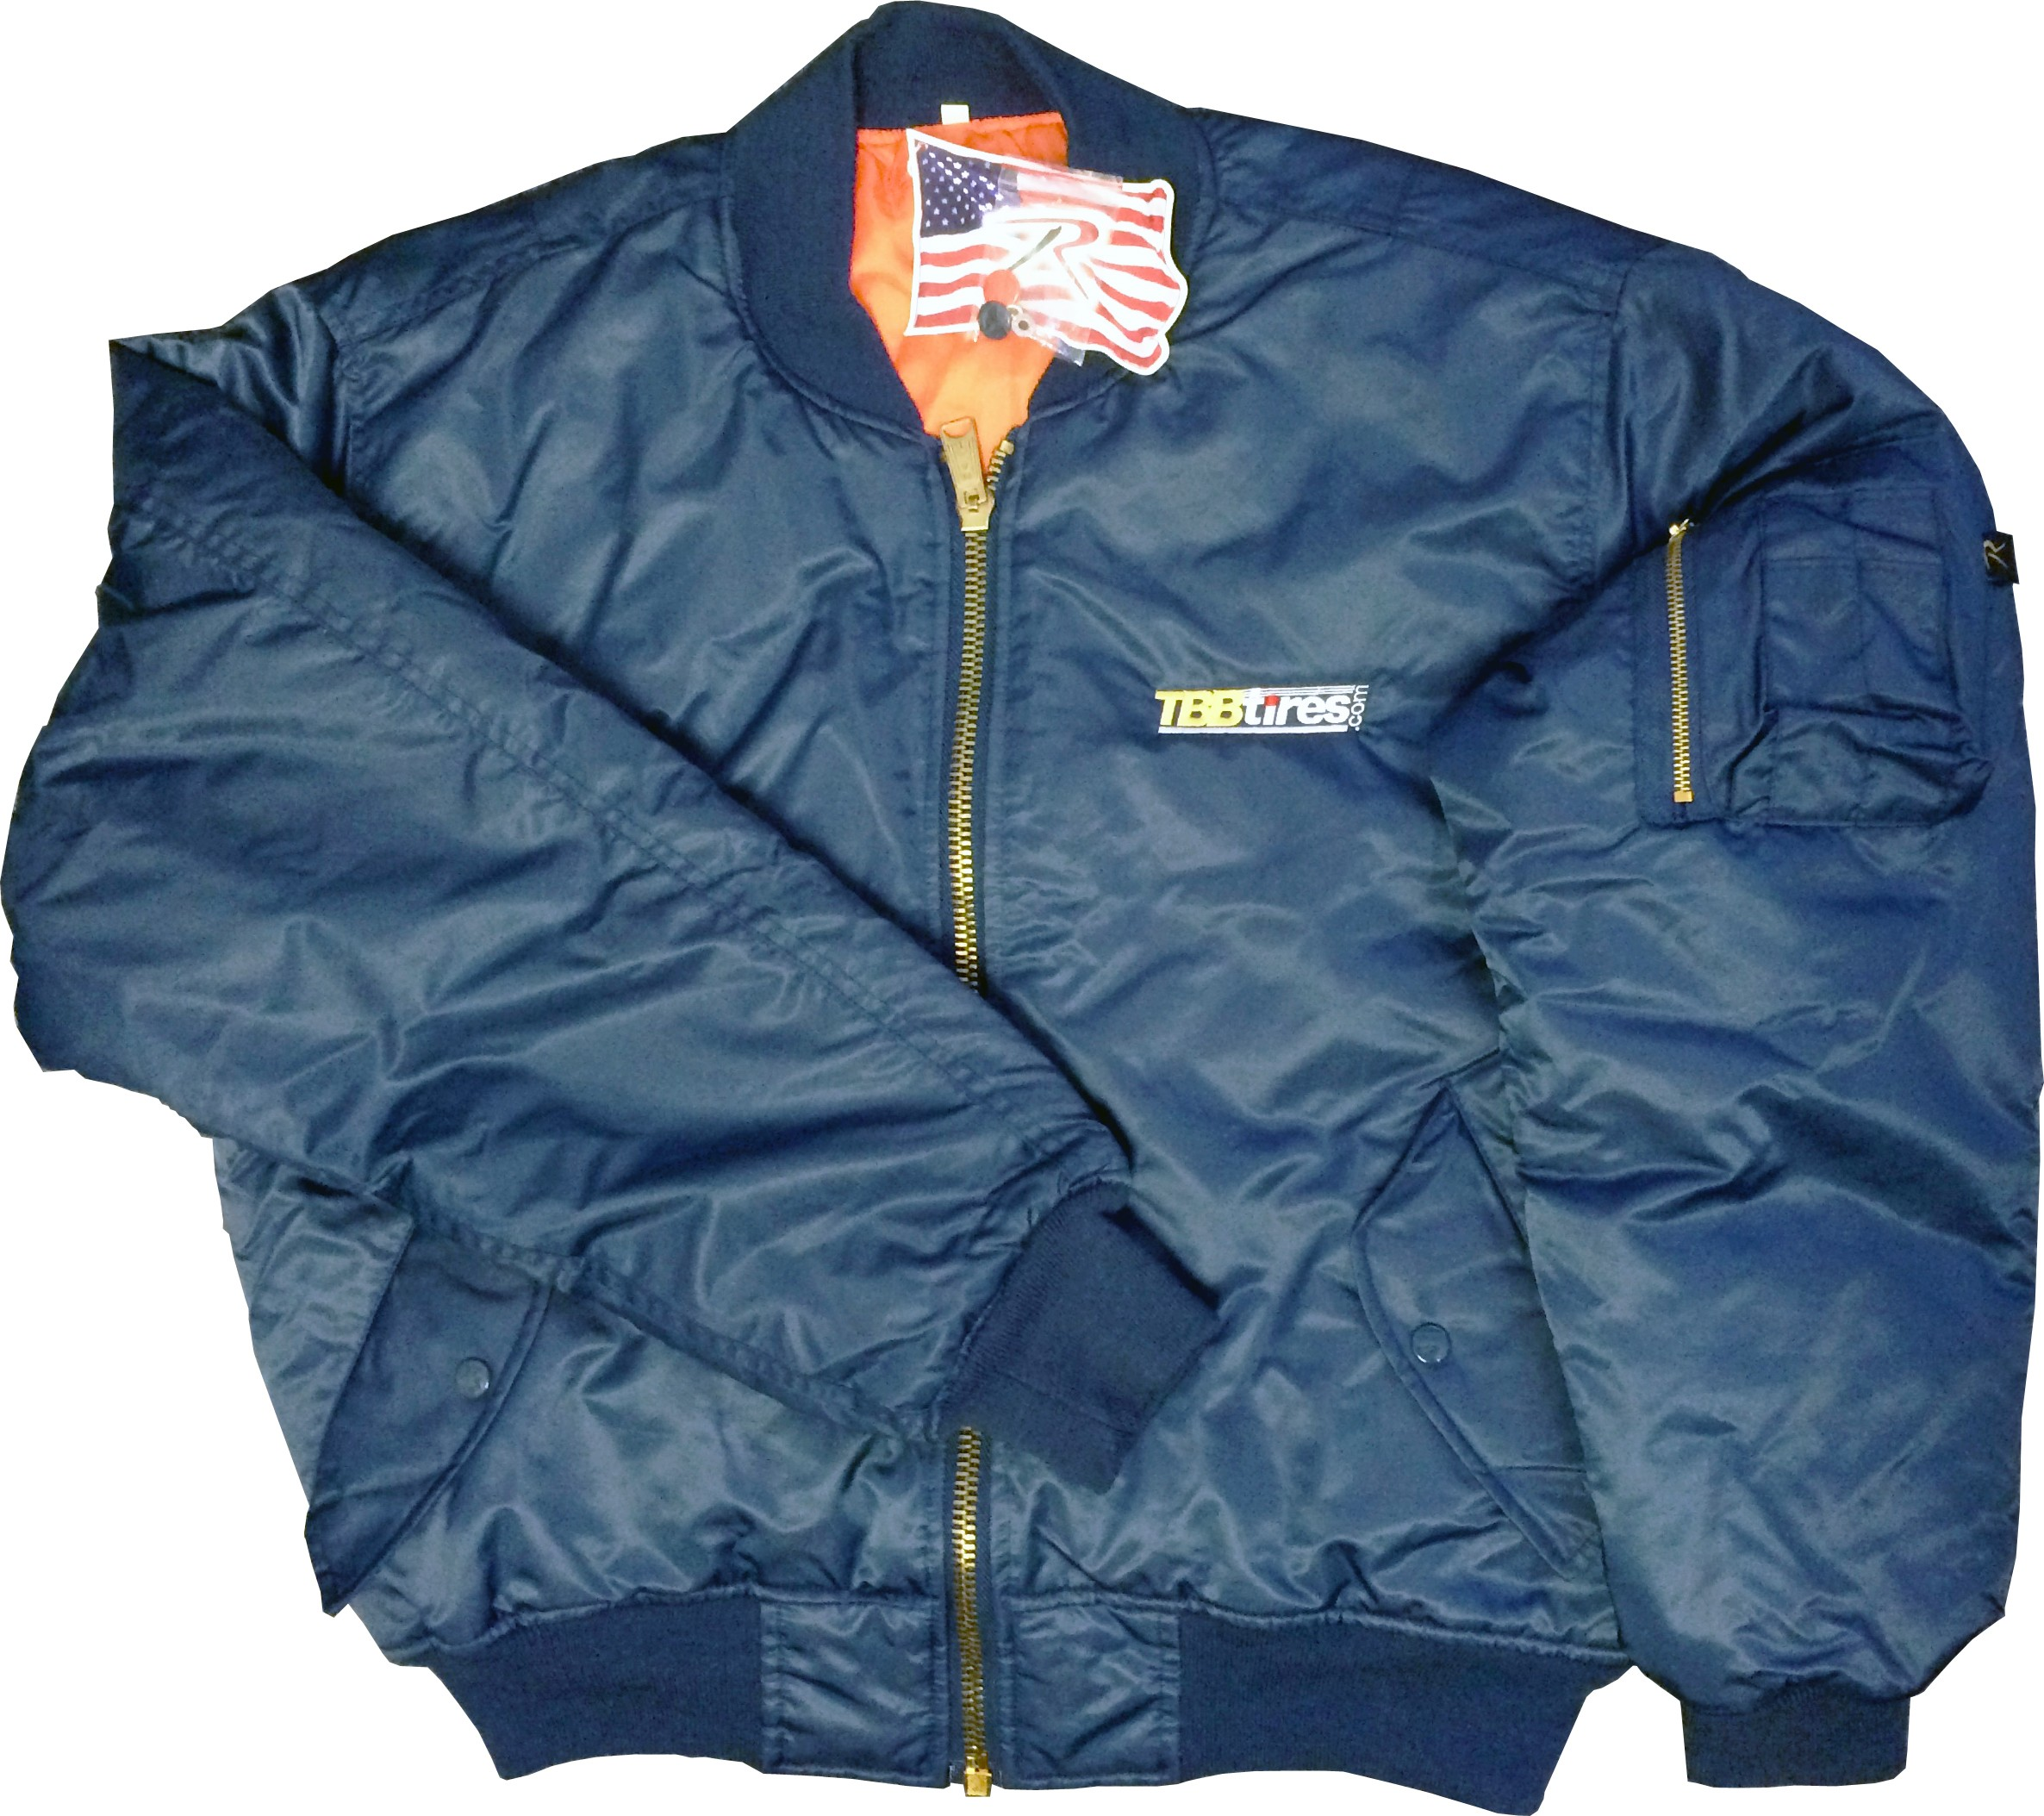 Rothco MA-1 Flight Jacket - TBBtires